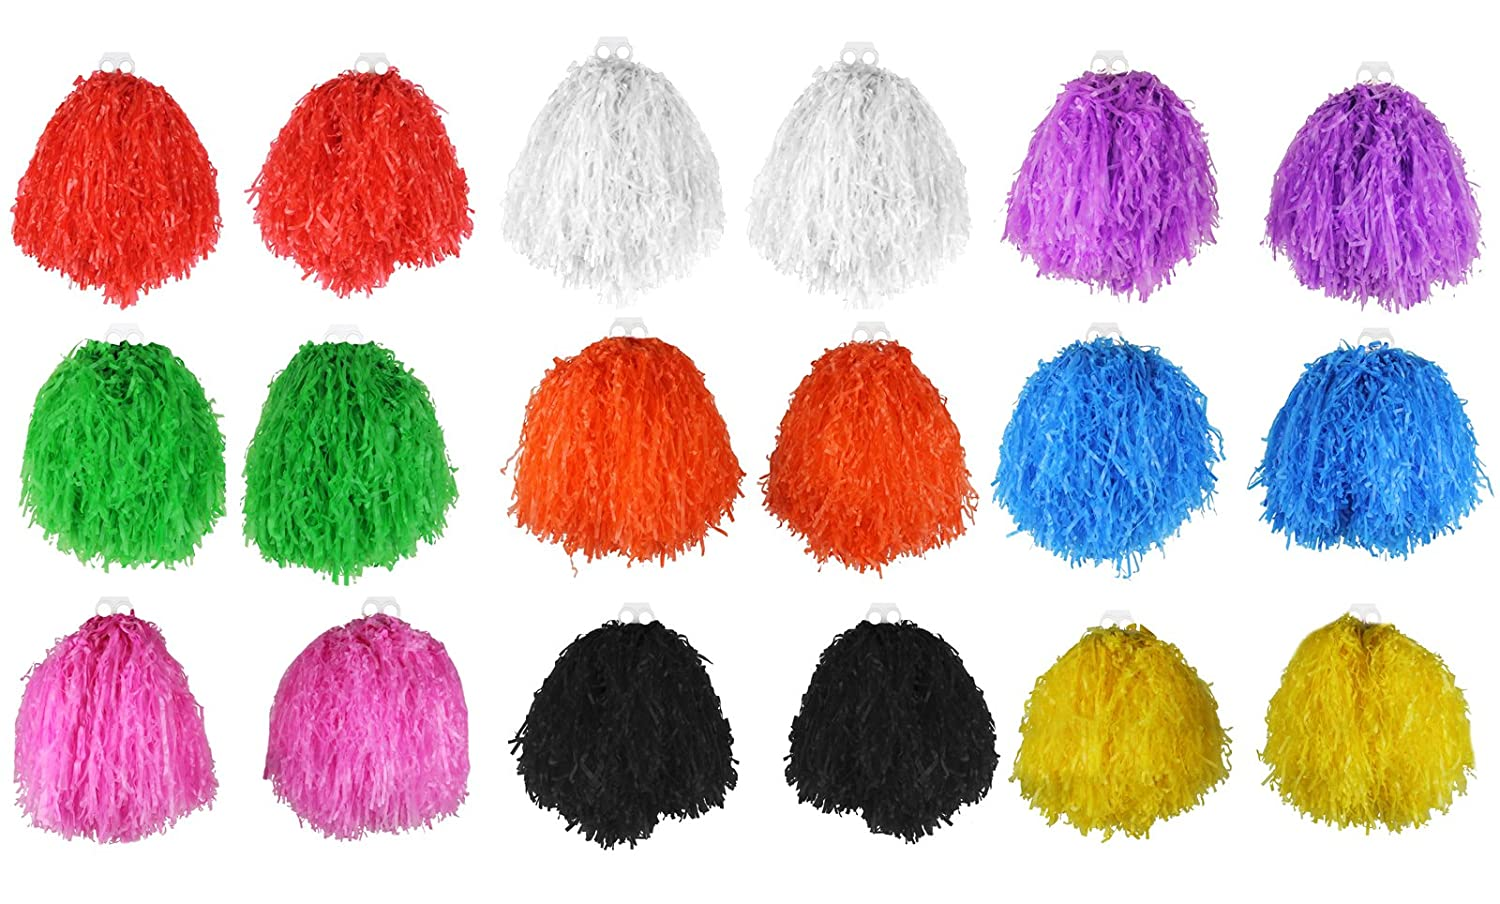 JUMBO USA POM POMS IN PAIRS CHEERLEADER DANCE SCHOOL SHOW FANCY DRESS ACCESSORY GIANT SIZE PAIR OF POMPOM SETS IN A CHOICE OF 9 BRIGHT COLOUR TASSELS (BLACK) (1 PAIR) ILOVEFANCYDRESS ILFD059-BK-PAIR